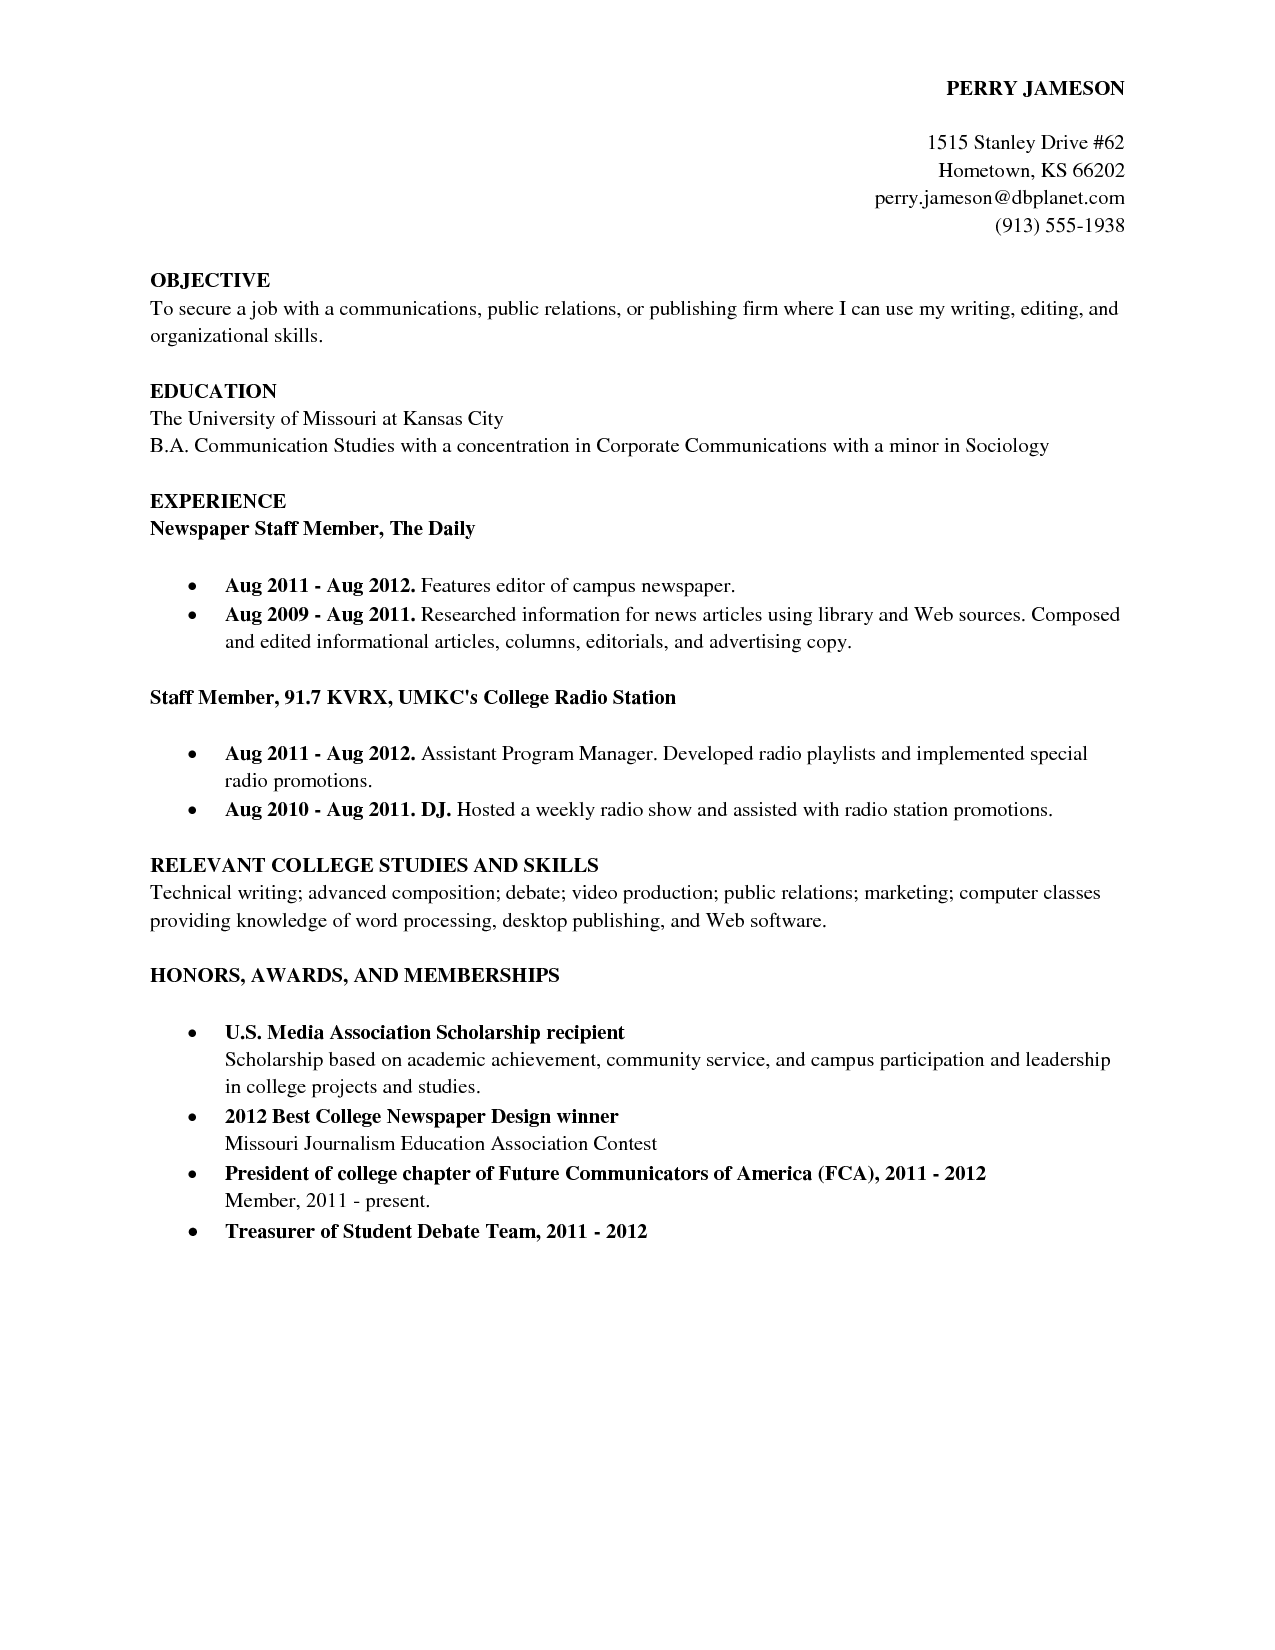 job resume college student sample resume 2017 f57557356f0539f5e86daa032dcd9fc3 job resume college studenthtml - Sample Resume College Graduate